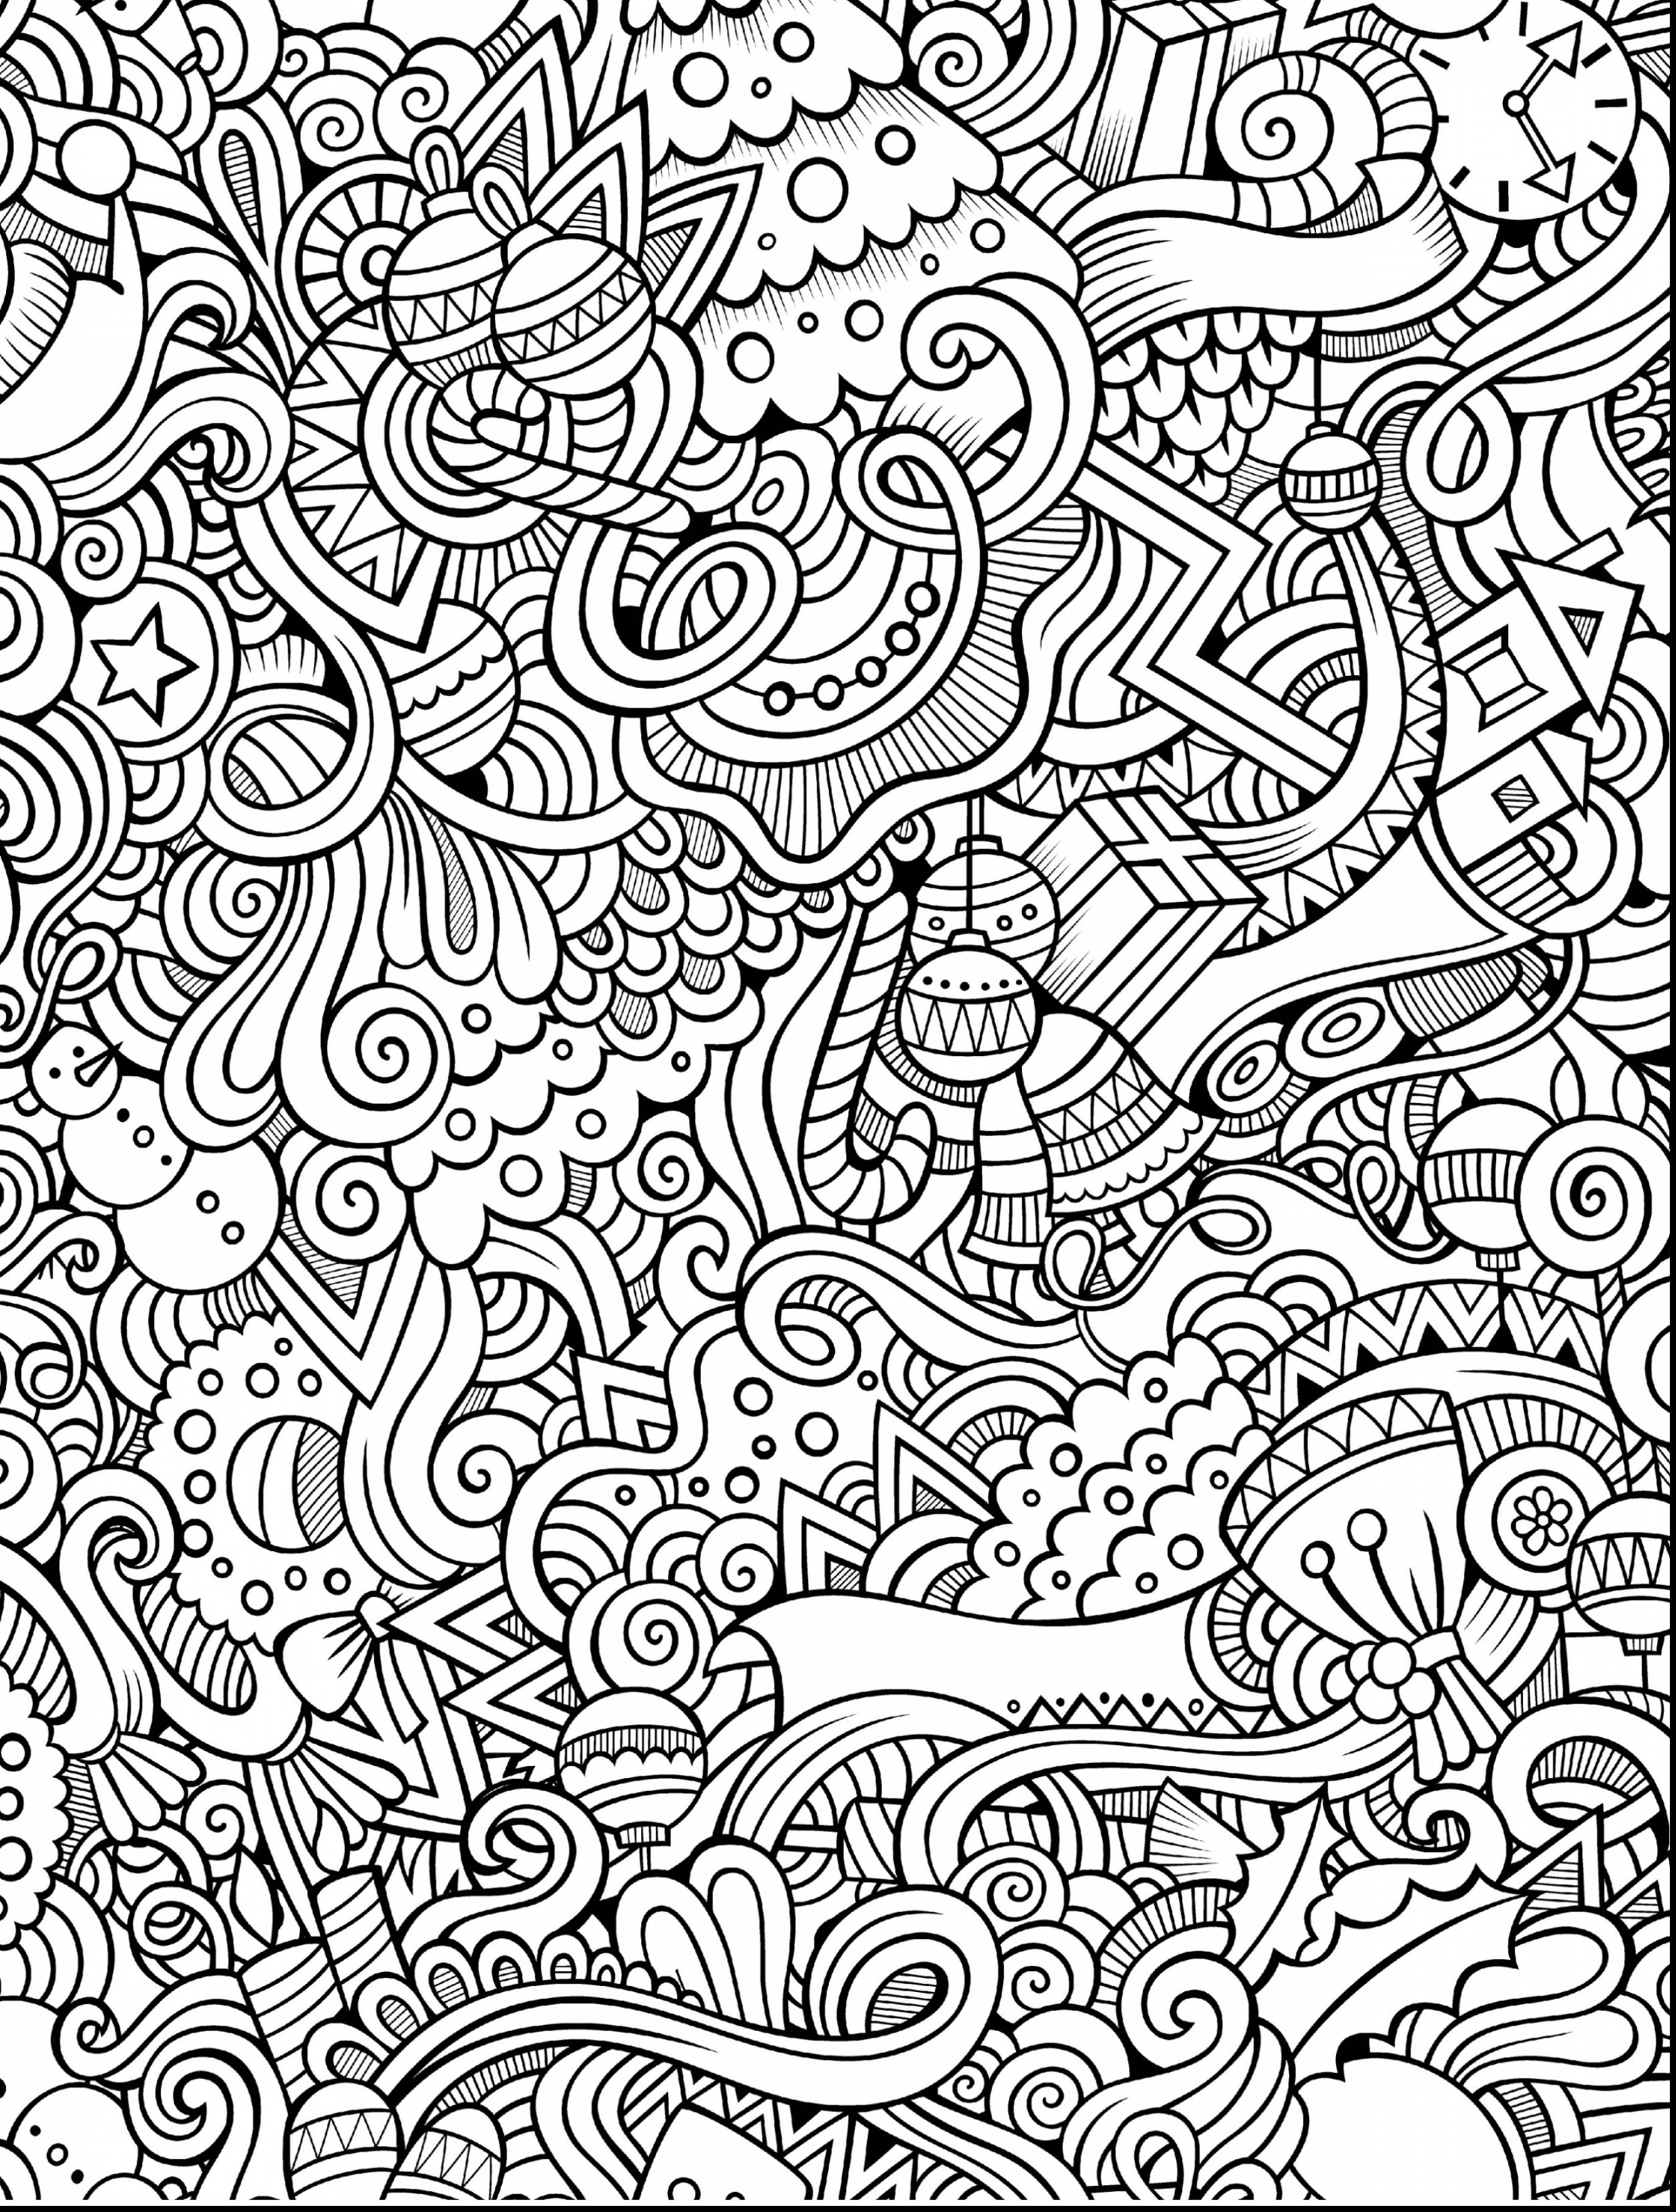 hard coloring pages for adults difficult coloring pages for adults free printable coloring hard adults for pages